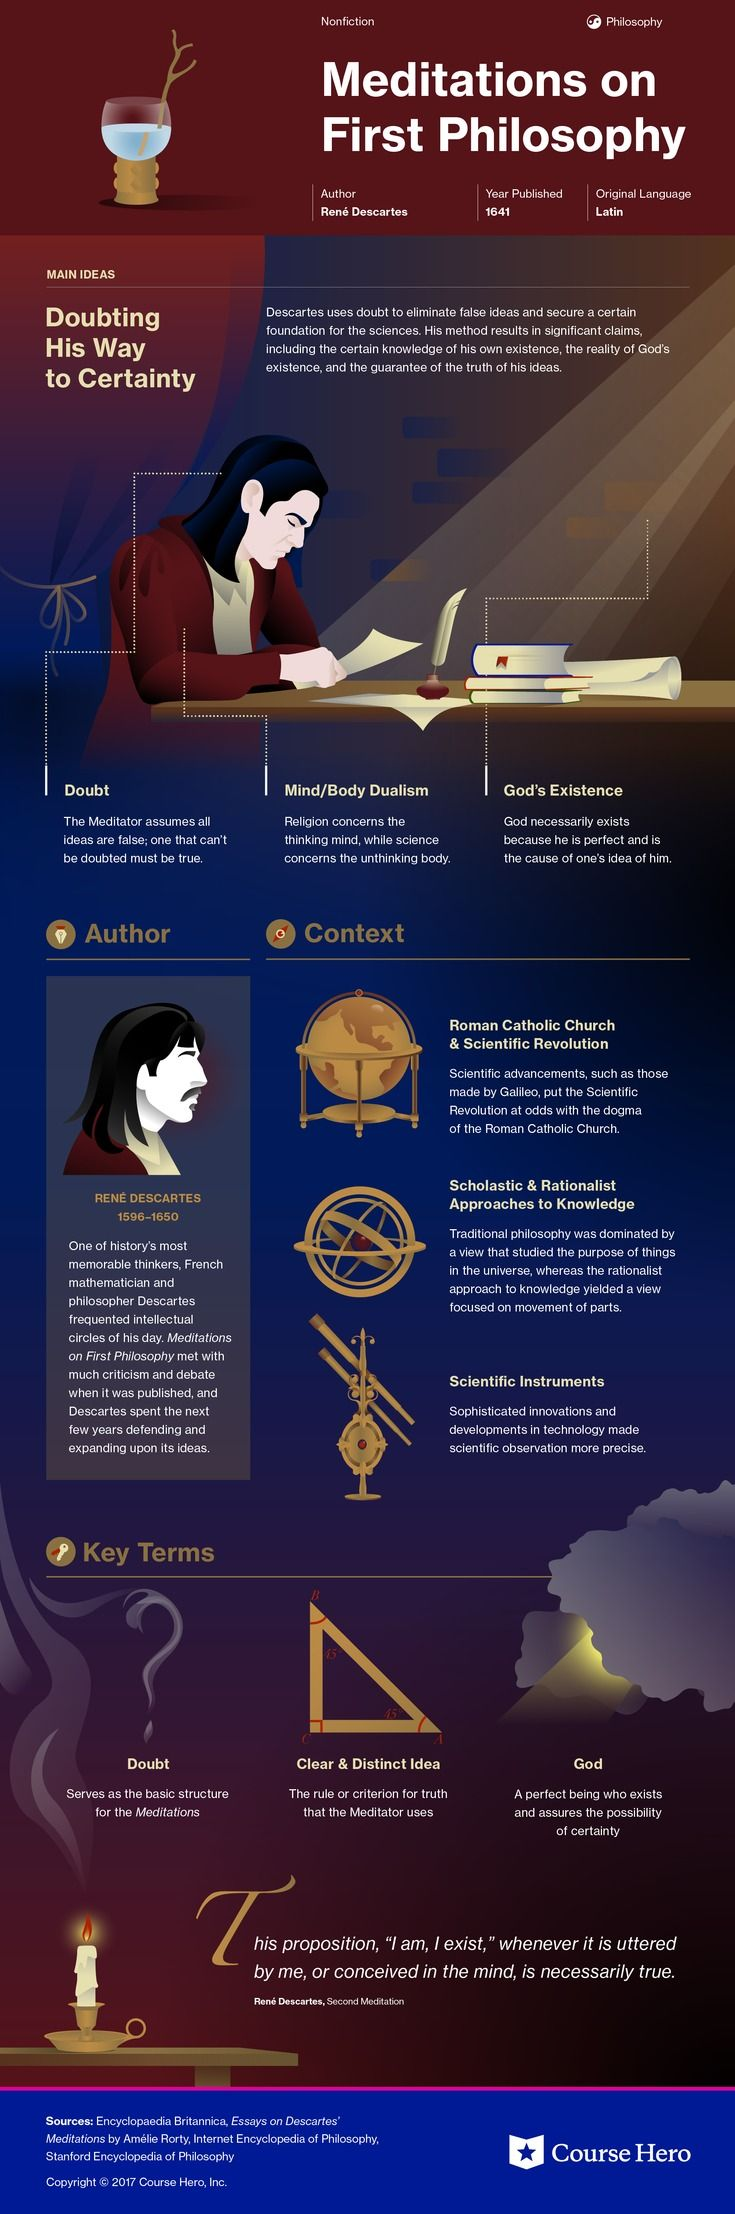 This @CourseHero infographic on Meditations on First Philosophy (with Objections and Replies) is both visually stunning and informative!